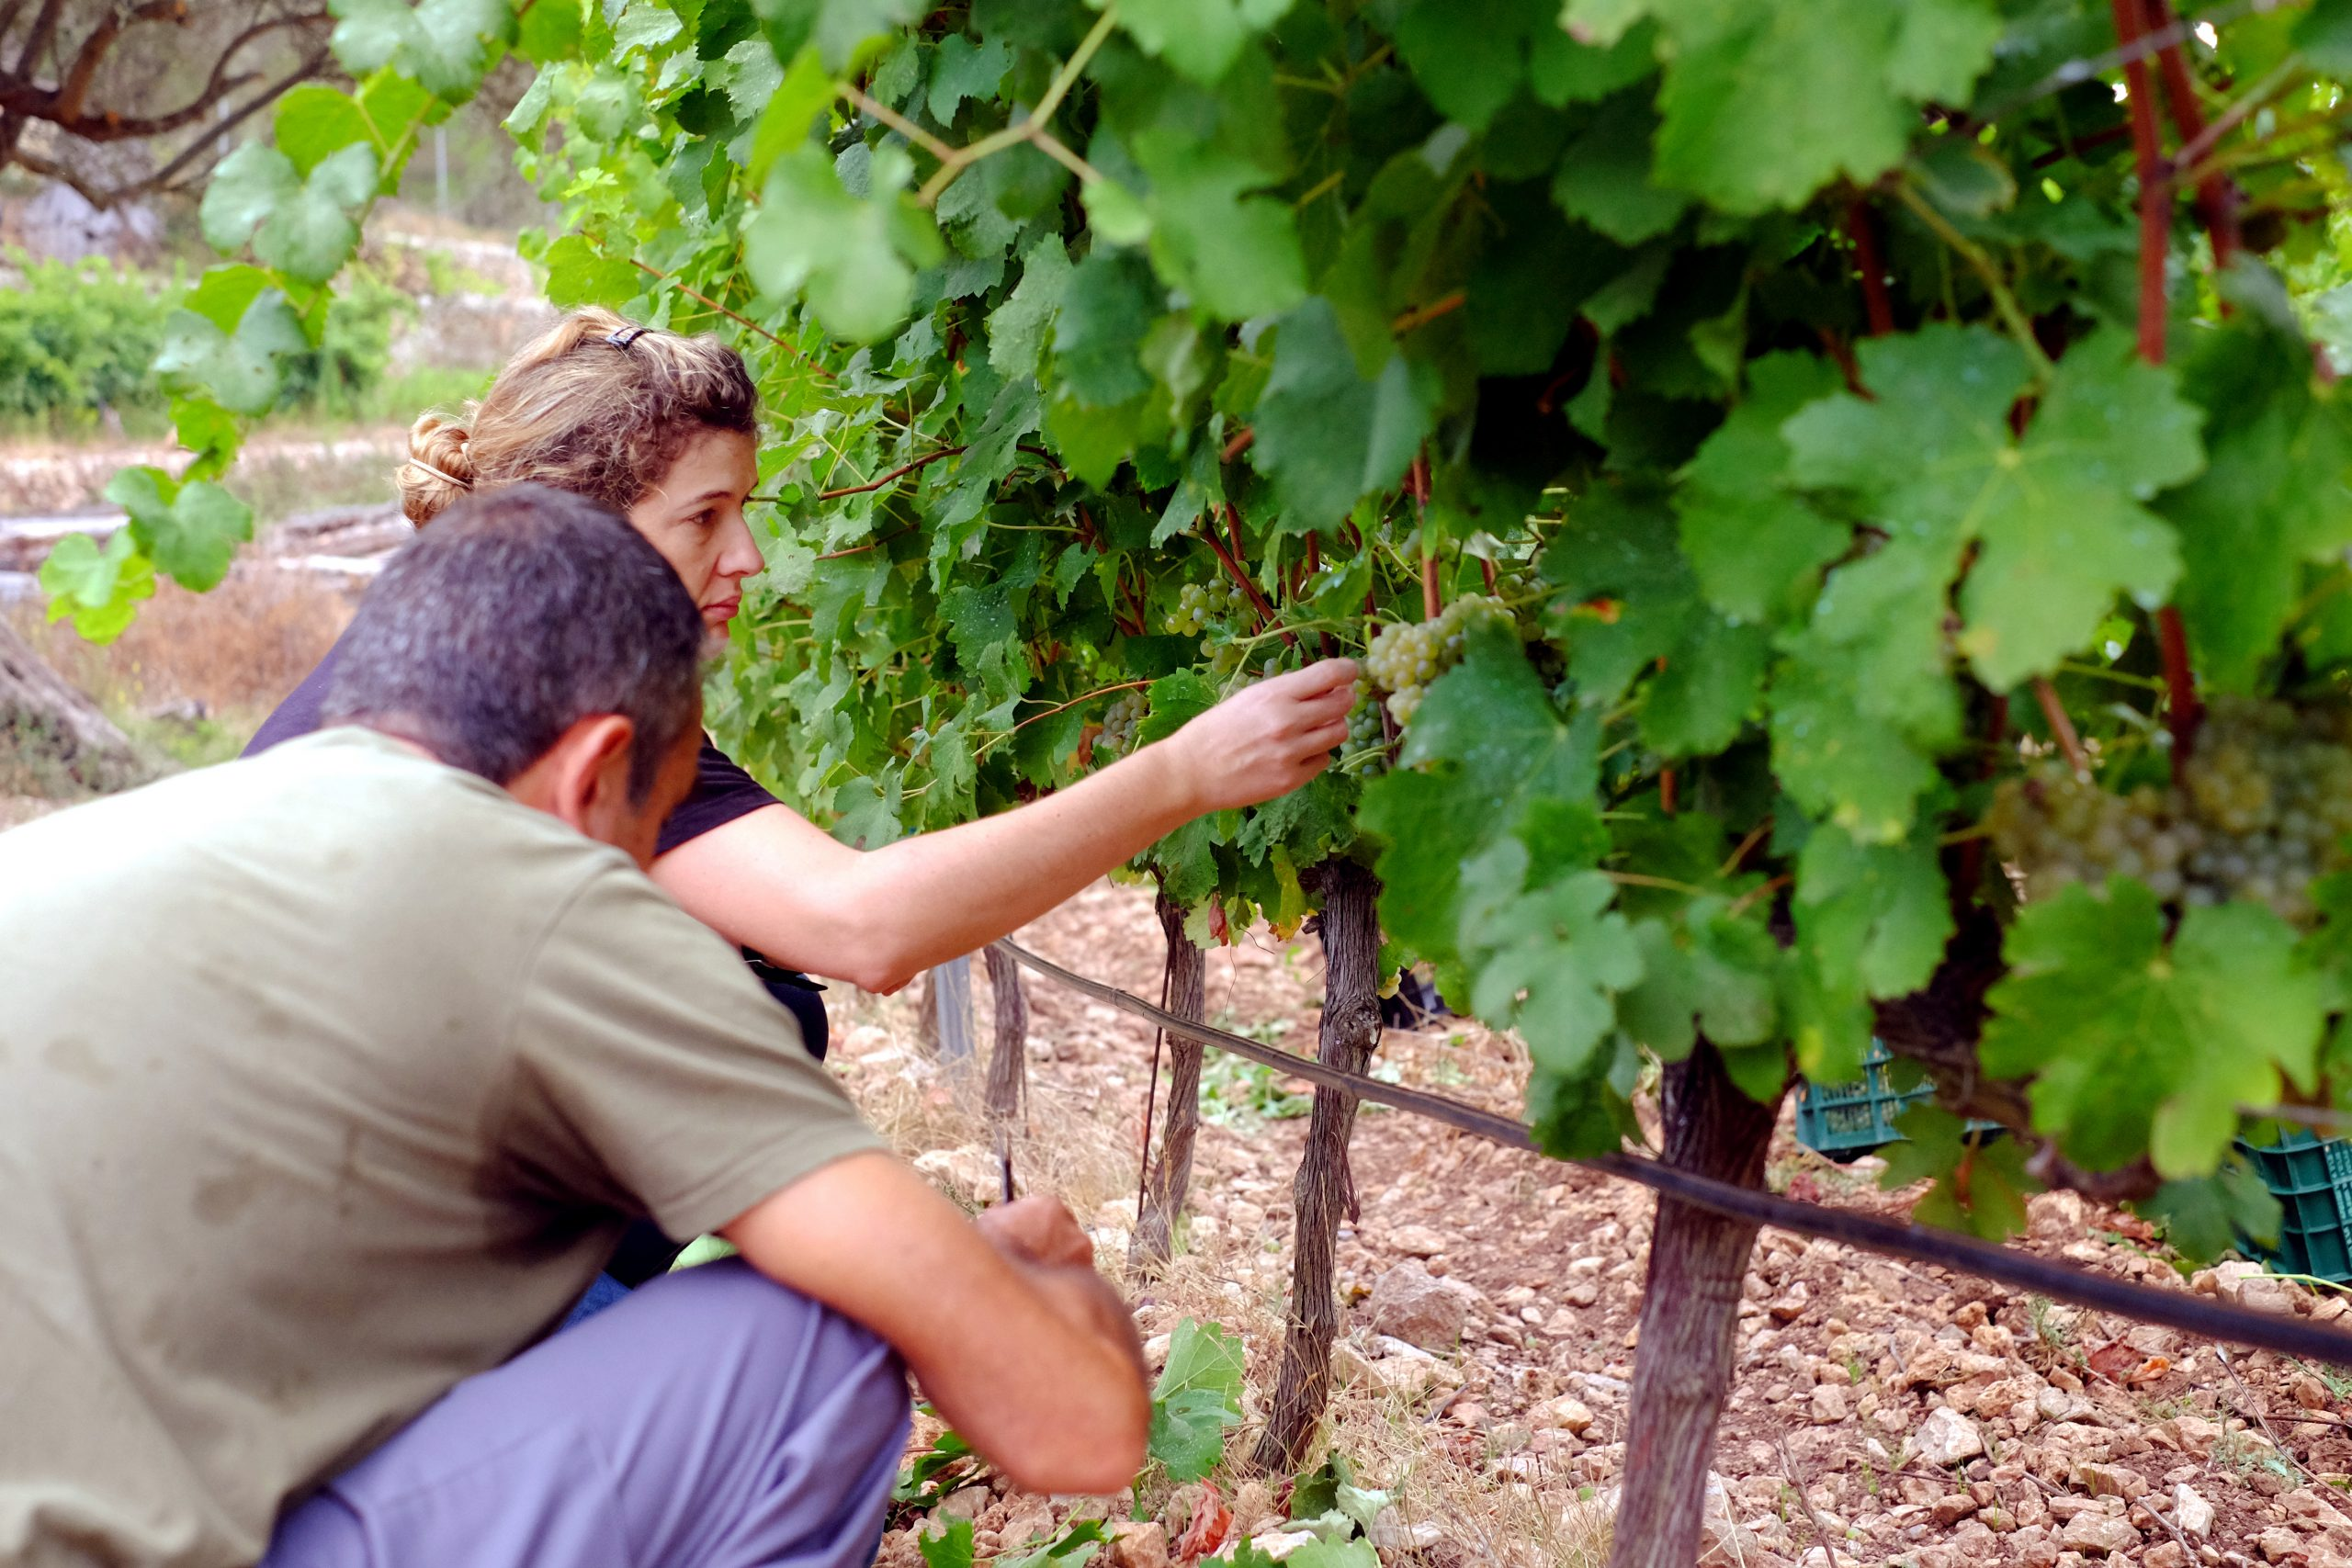 Field notebook, we know the work of our Winemaker